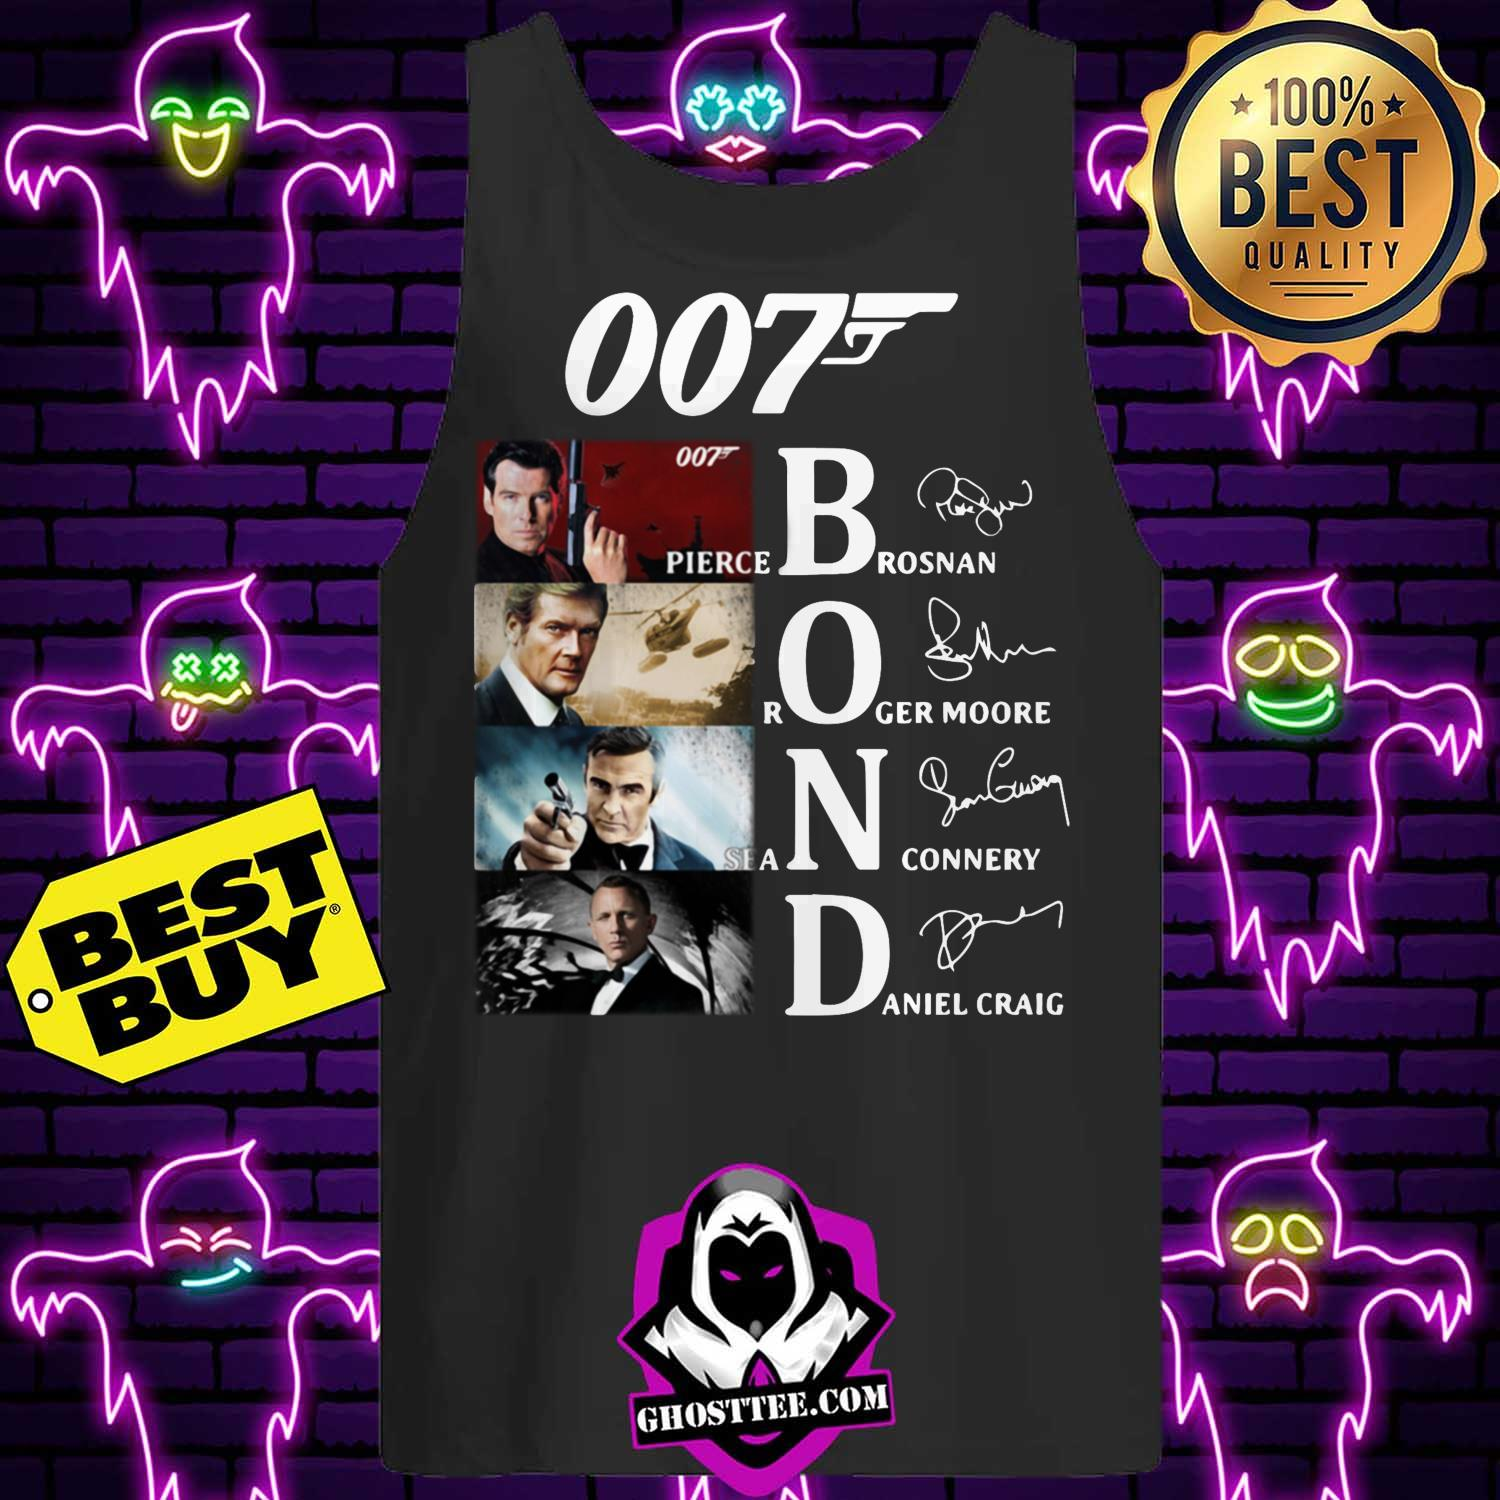 007 james bond signature tank top - 007 James Bond signature shirt sweater